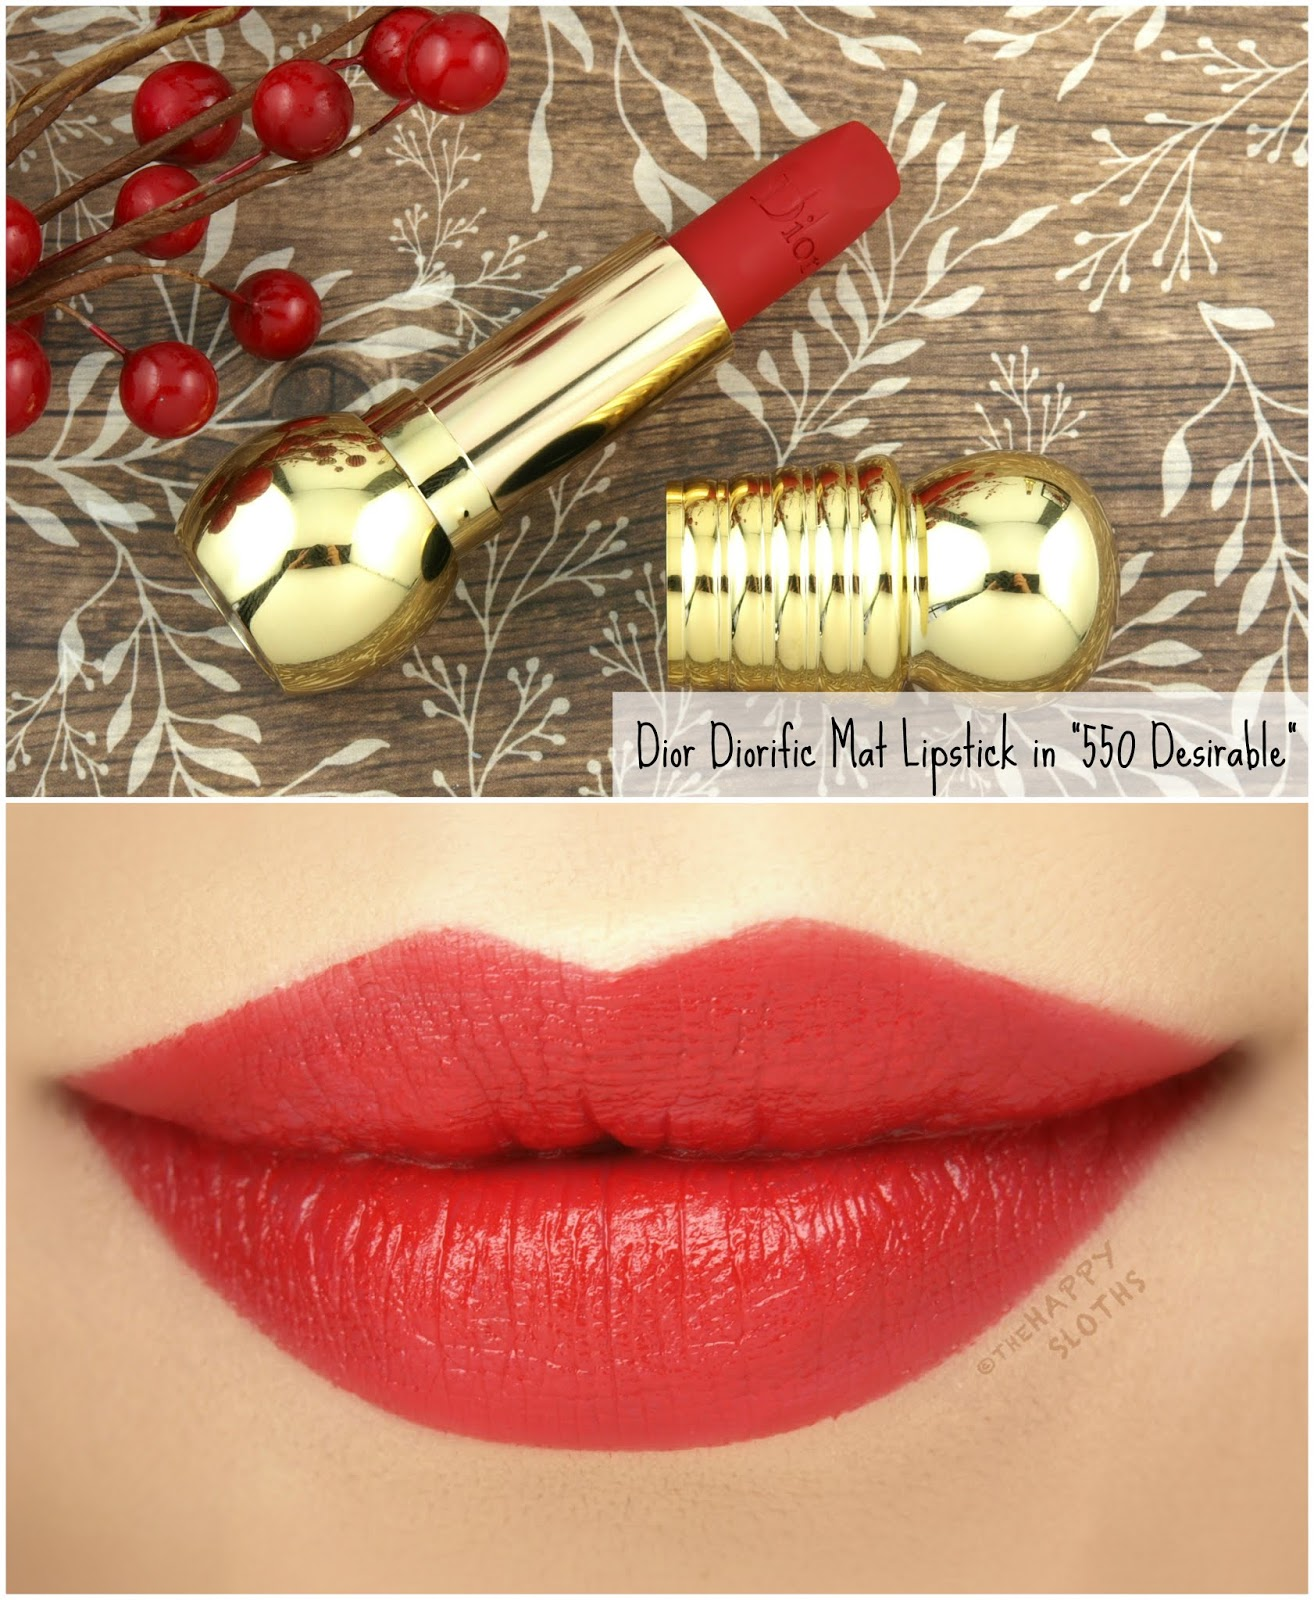 "Dior | Holiday 2018 Diorific Mat Lipstick in ""550 Desirable"": Review and Swatches"